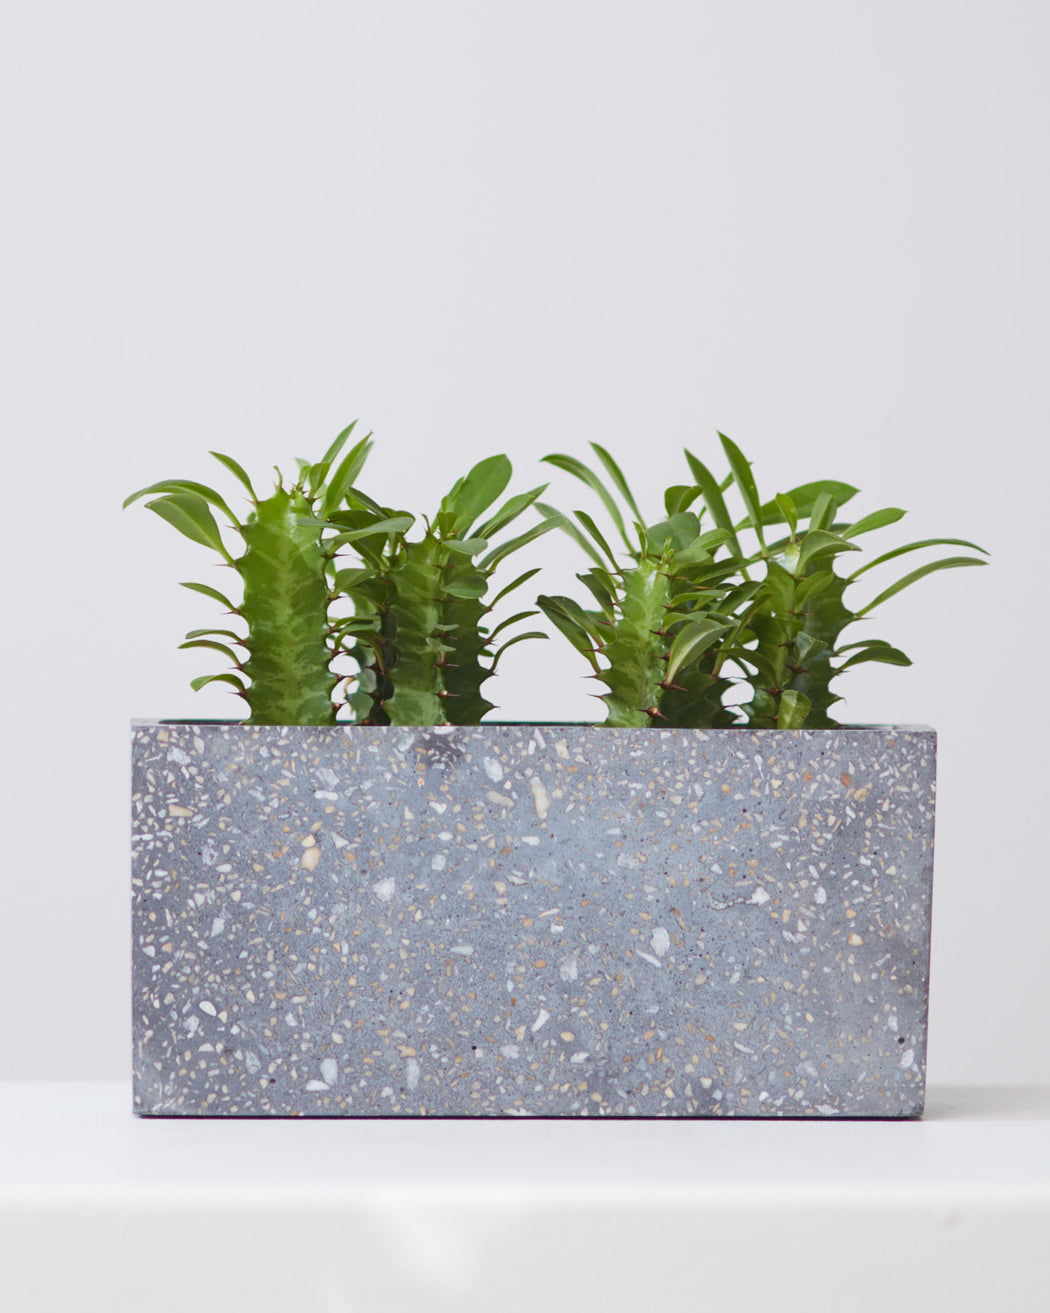 GREYSTONE PLANTER, Small 8.5 X 4.25 Inch (4 Inches deep)